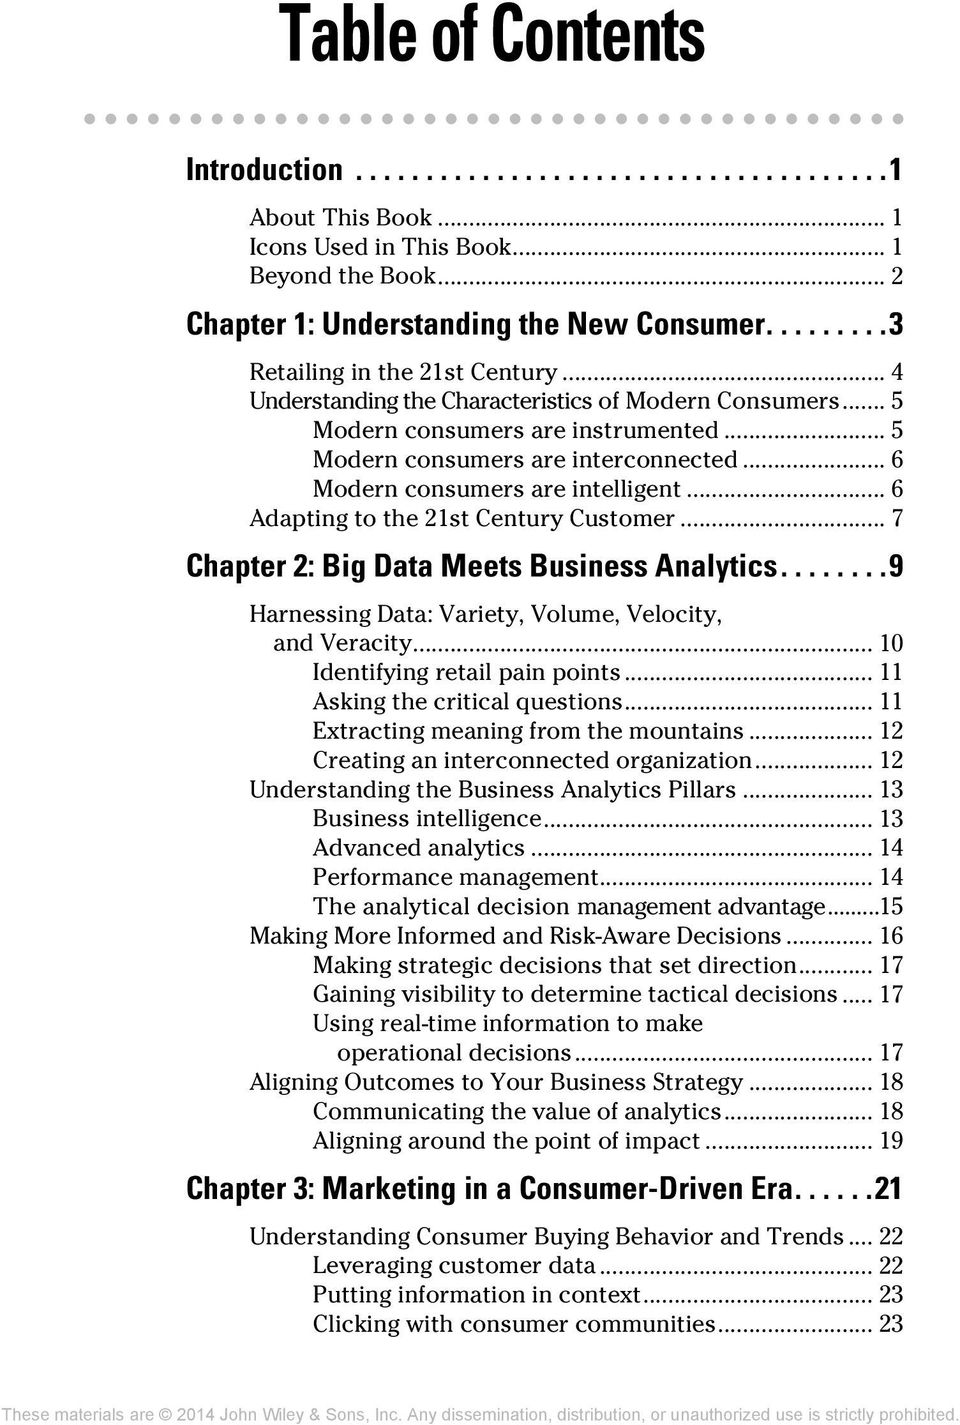 .. 6 Adapting to the 21st Century Customer... 7 Chapter 2: Big Data Meets Business Analytics... 9 Harnessing Data: Variety, Volume, Velocity, and Veracity... 10 Identifying retail pain points.